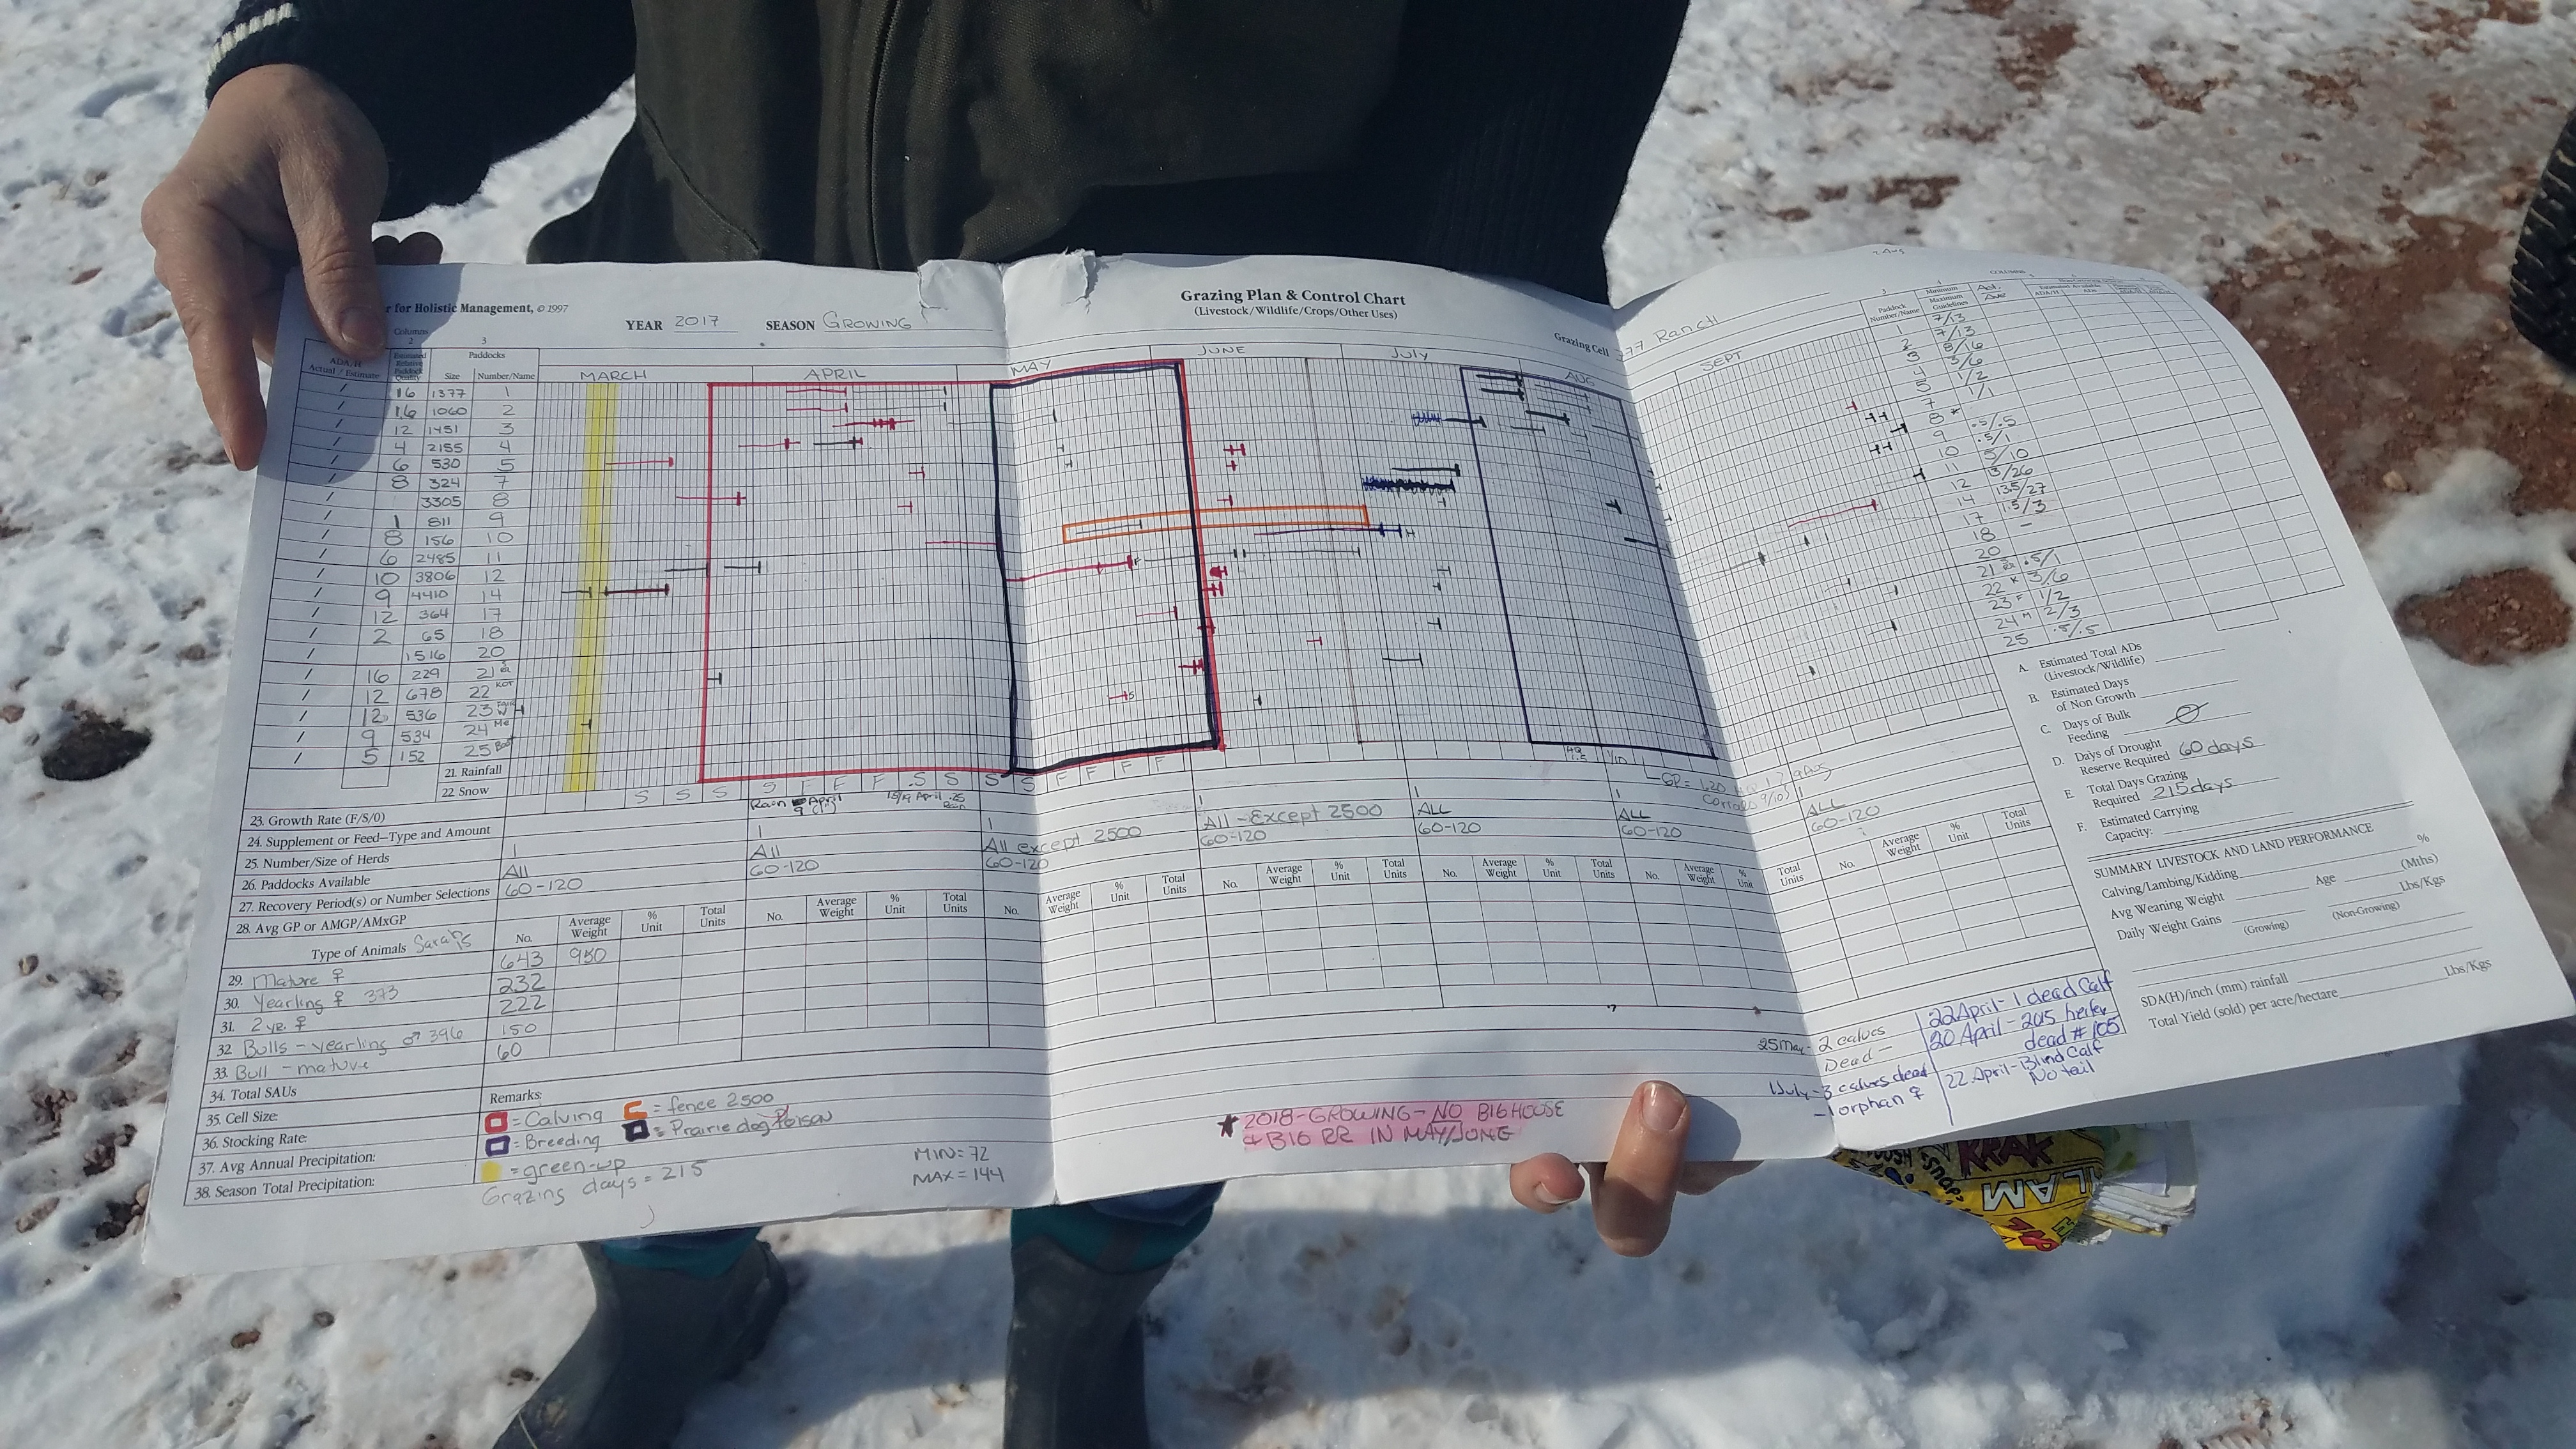 Their Holistic Planned Grazing worksheet